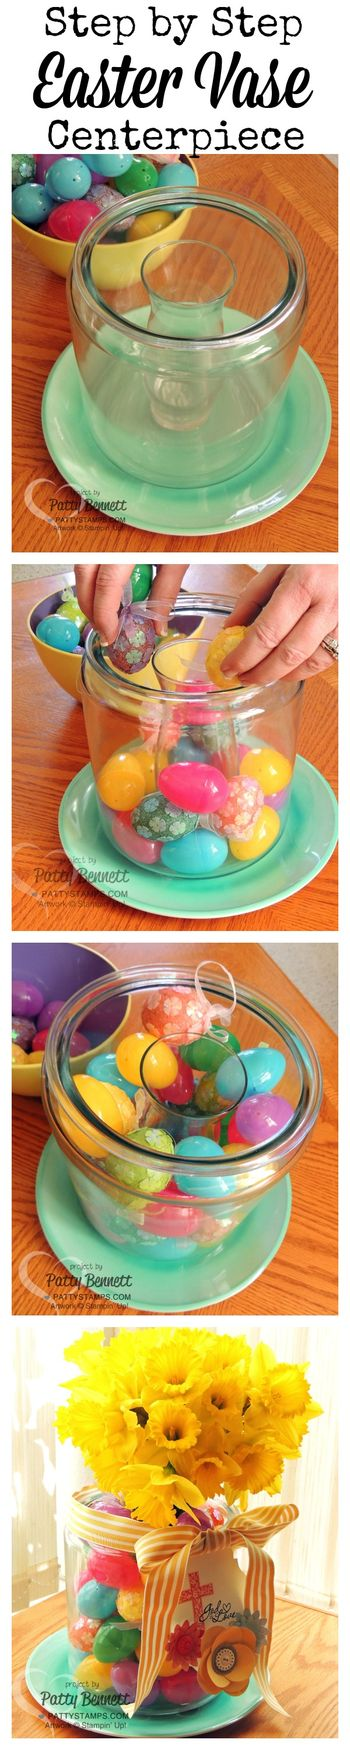 Easter-egg-vase-centerpiece-how-to